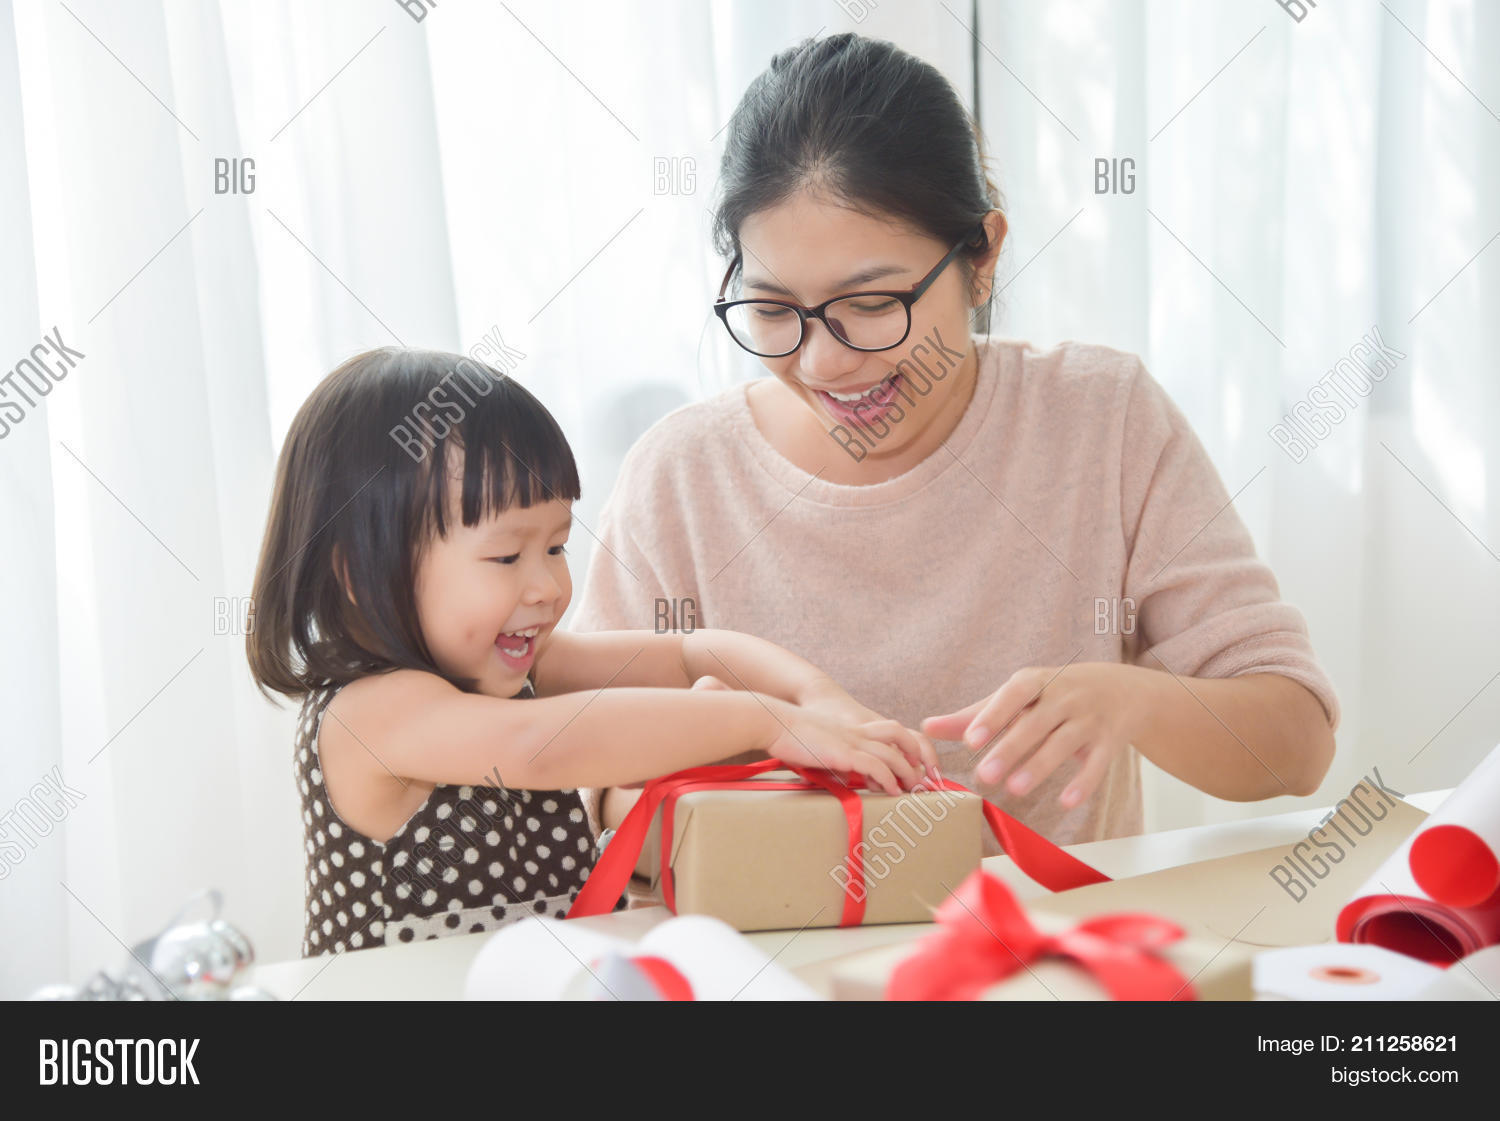 Young Mother And Her Daughter Wrapping A Gift Box For Birthday Christmas New Year In